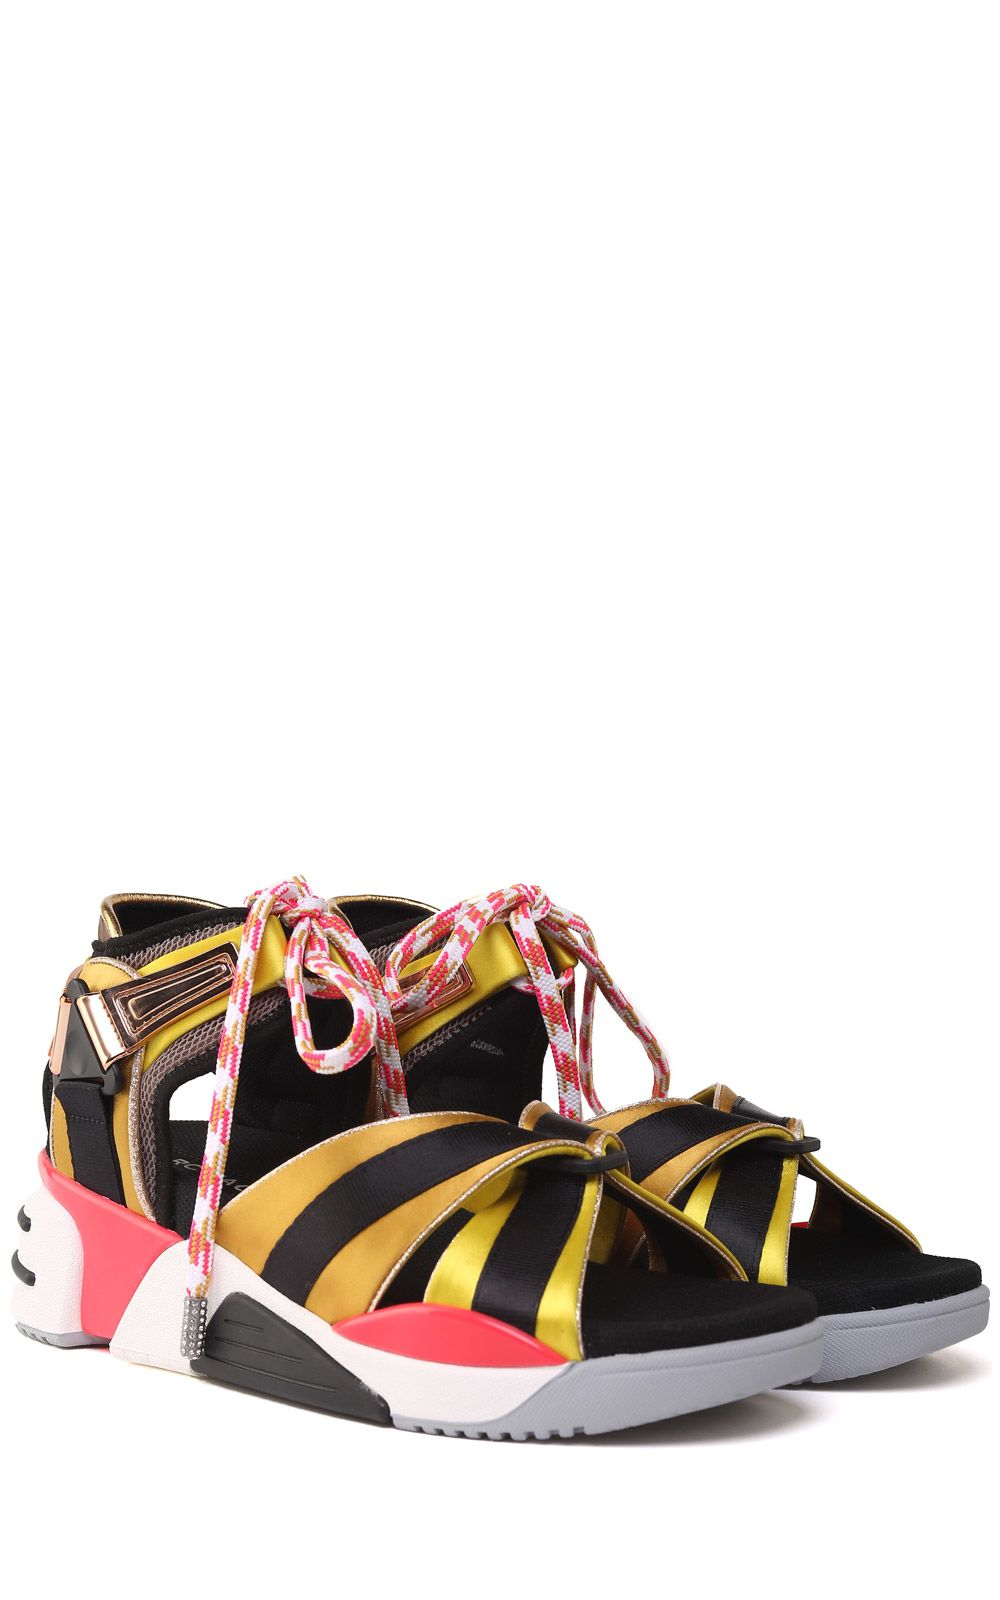 Somewhere Sport mesh and satin sandals Marc Jacobs 1VgUk